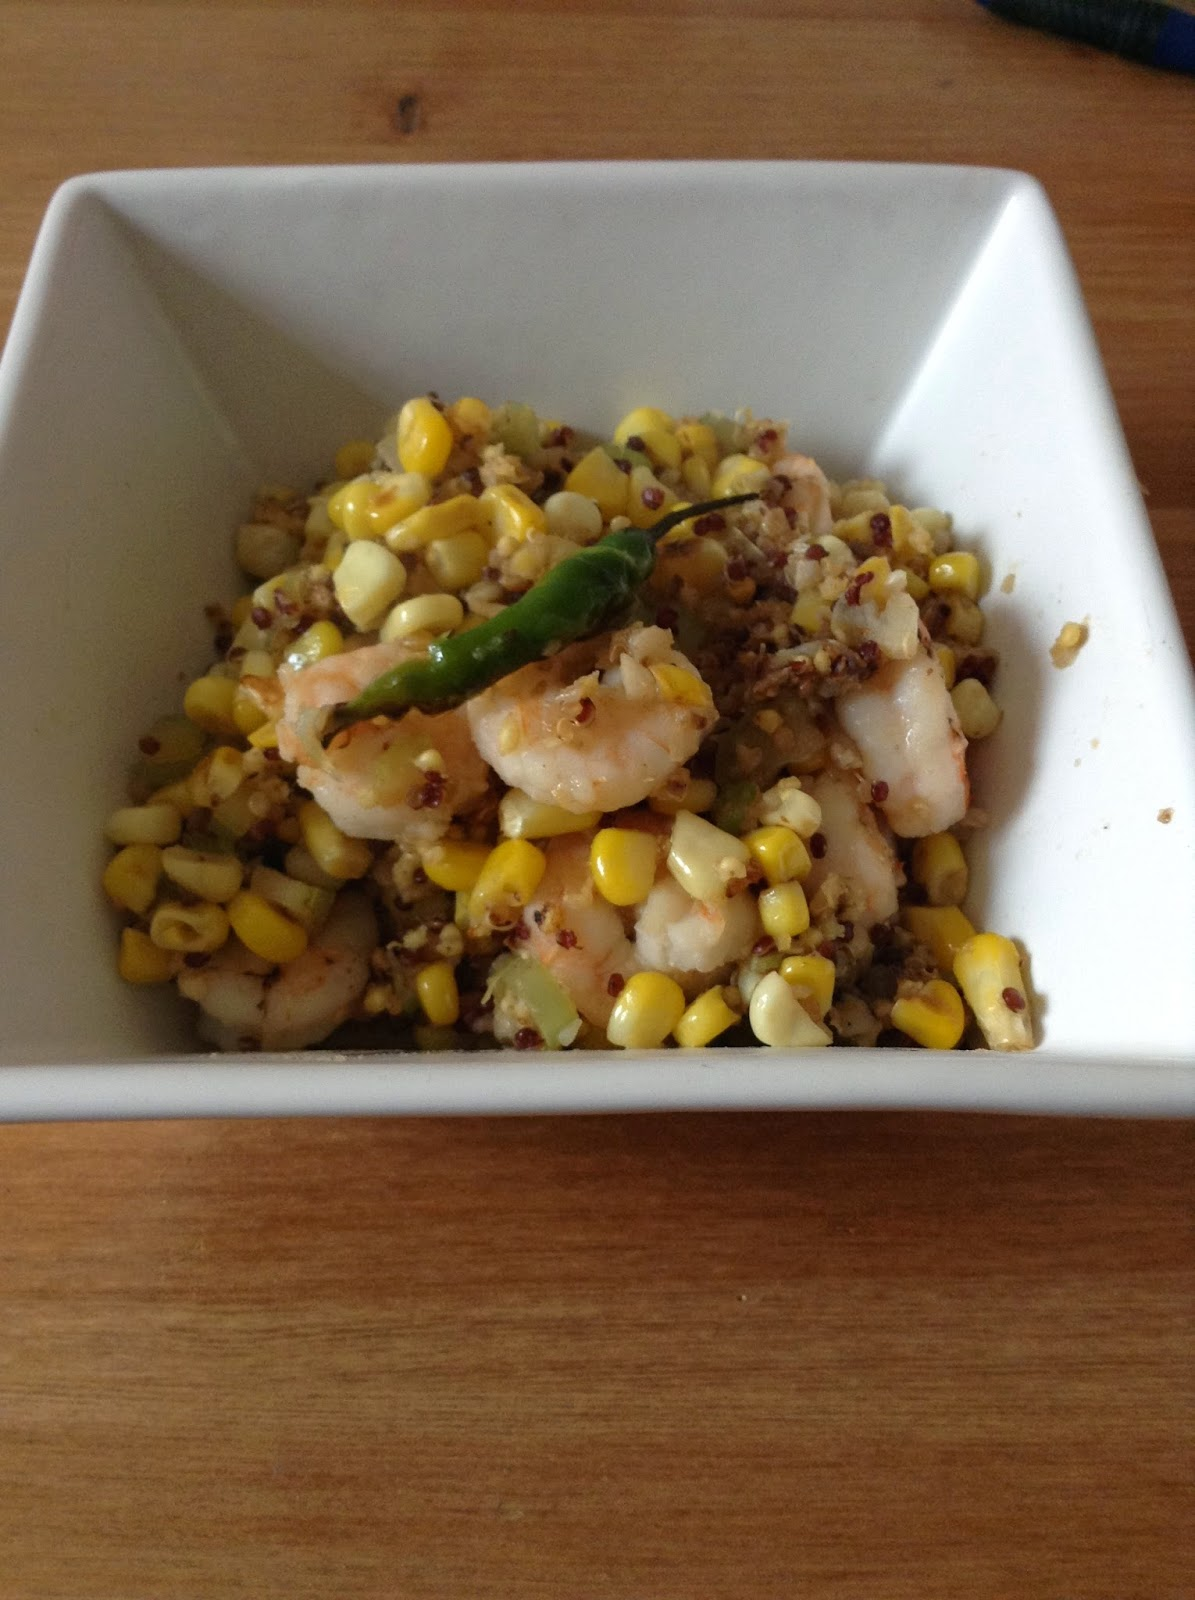 A stir-fried grain mix of quinoa, buckwheat and millet supplemented with shrimp